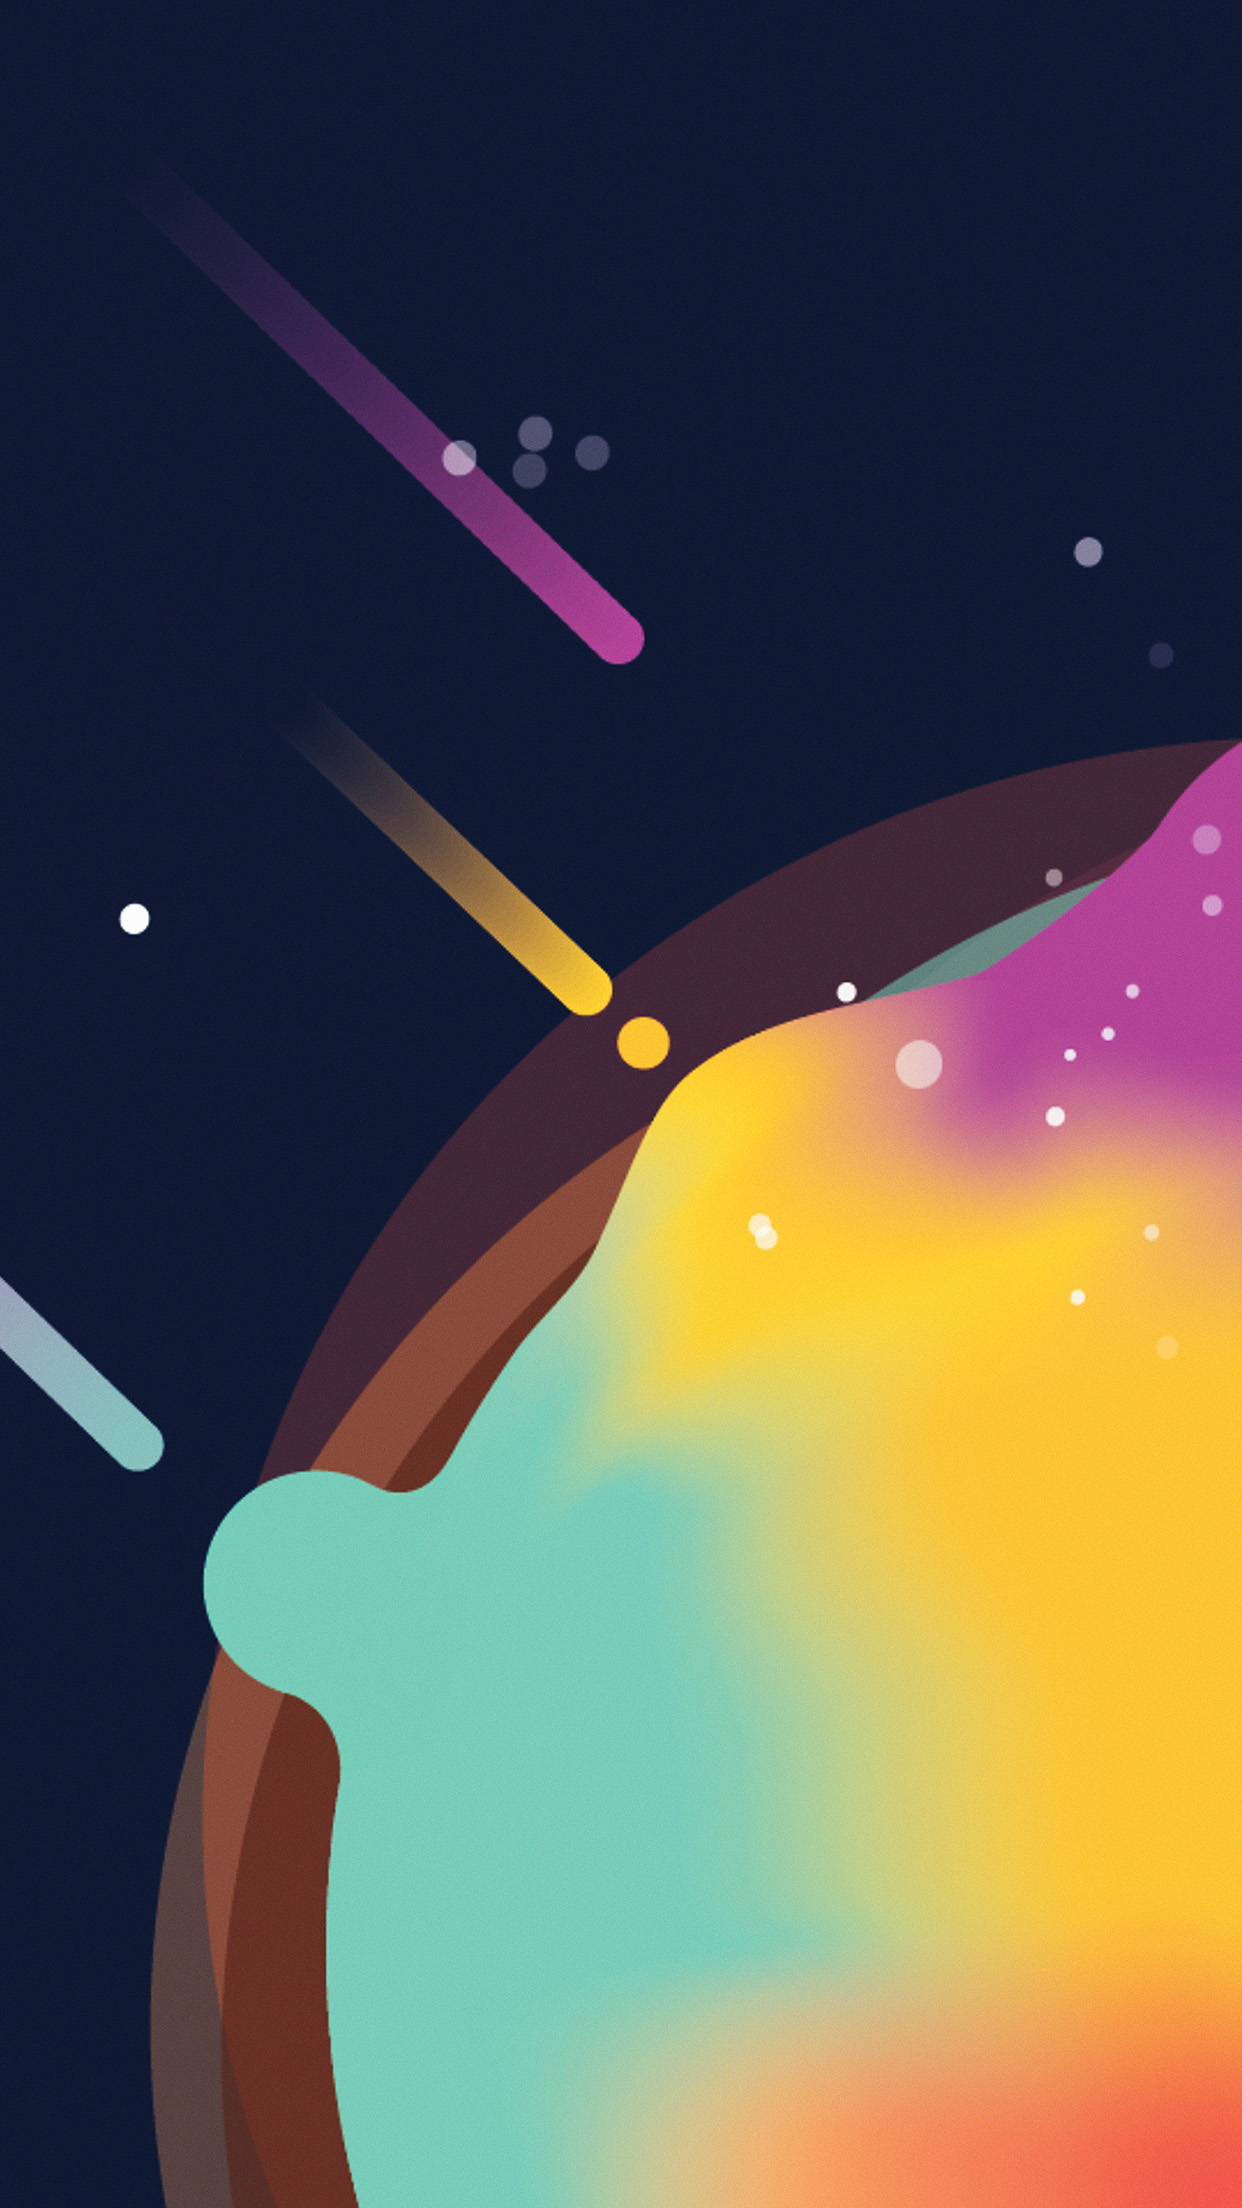 space simple minimal graphic illustration art android wallpaper